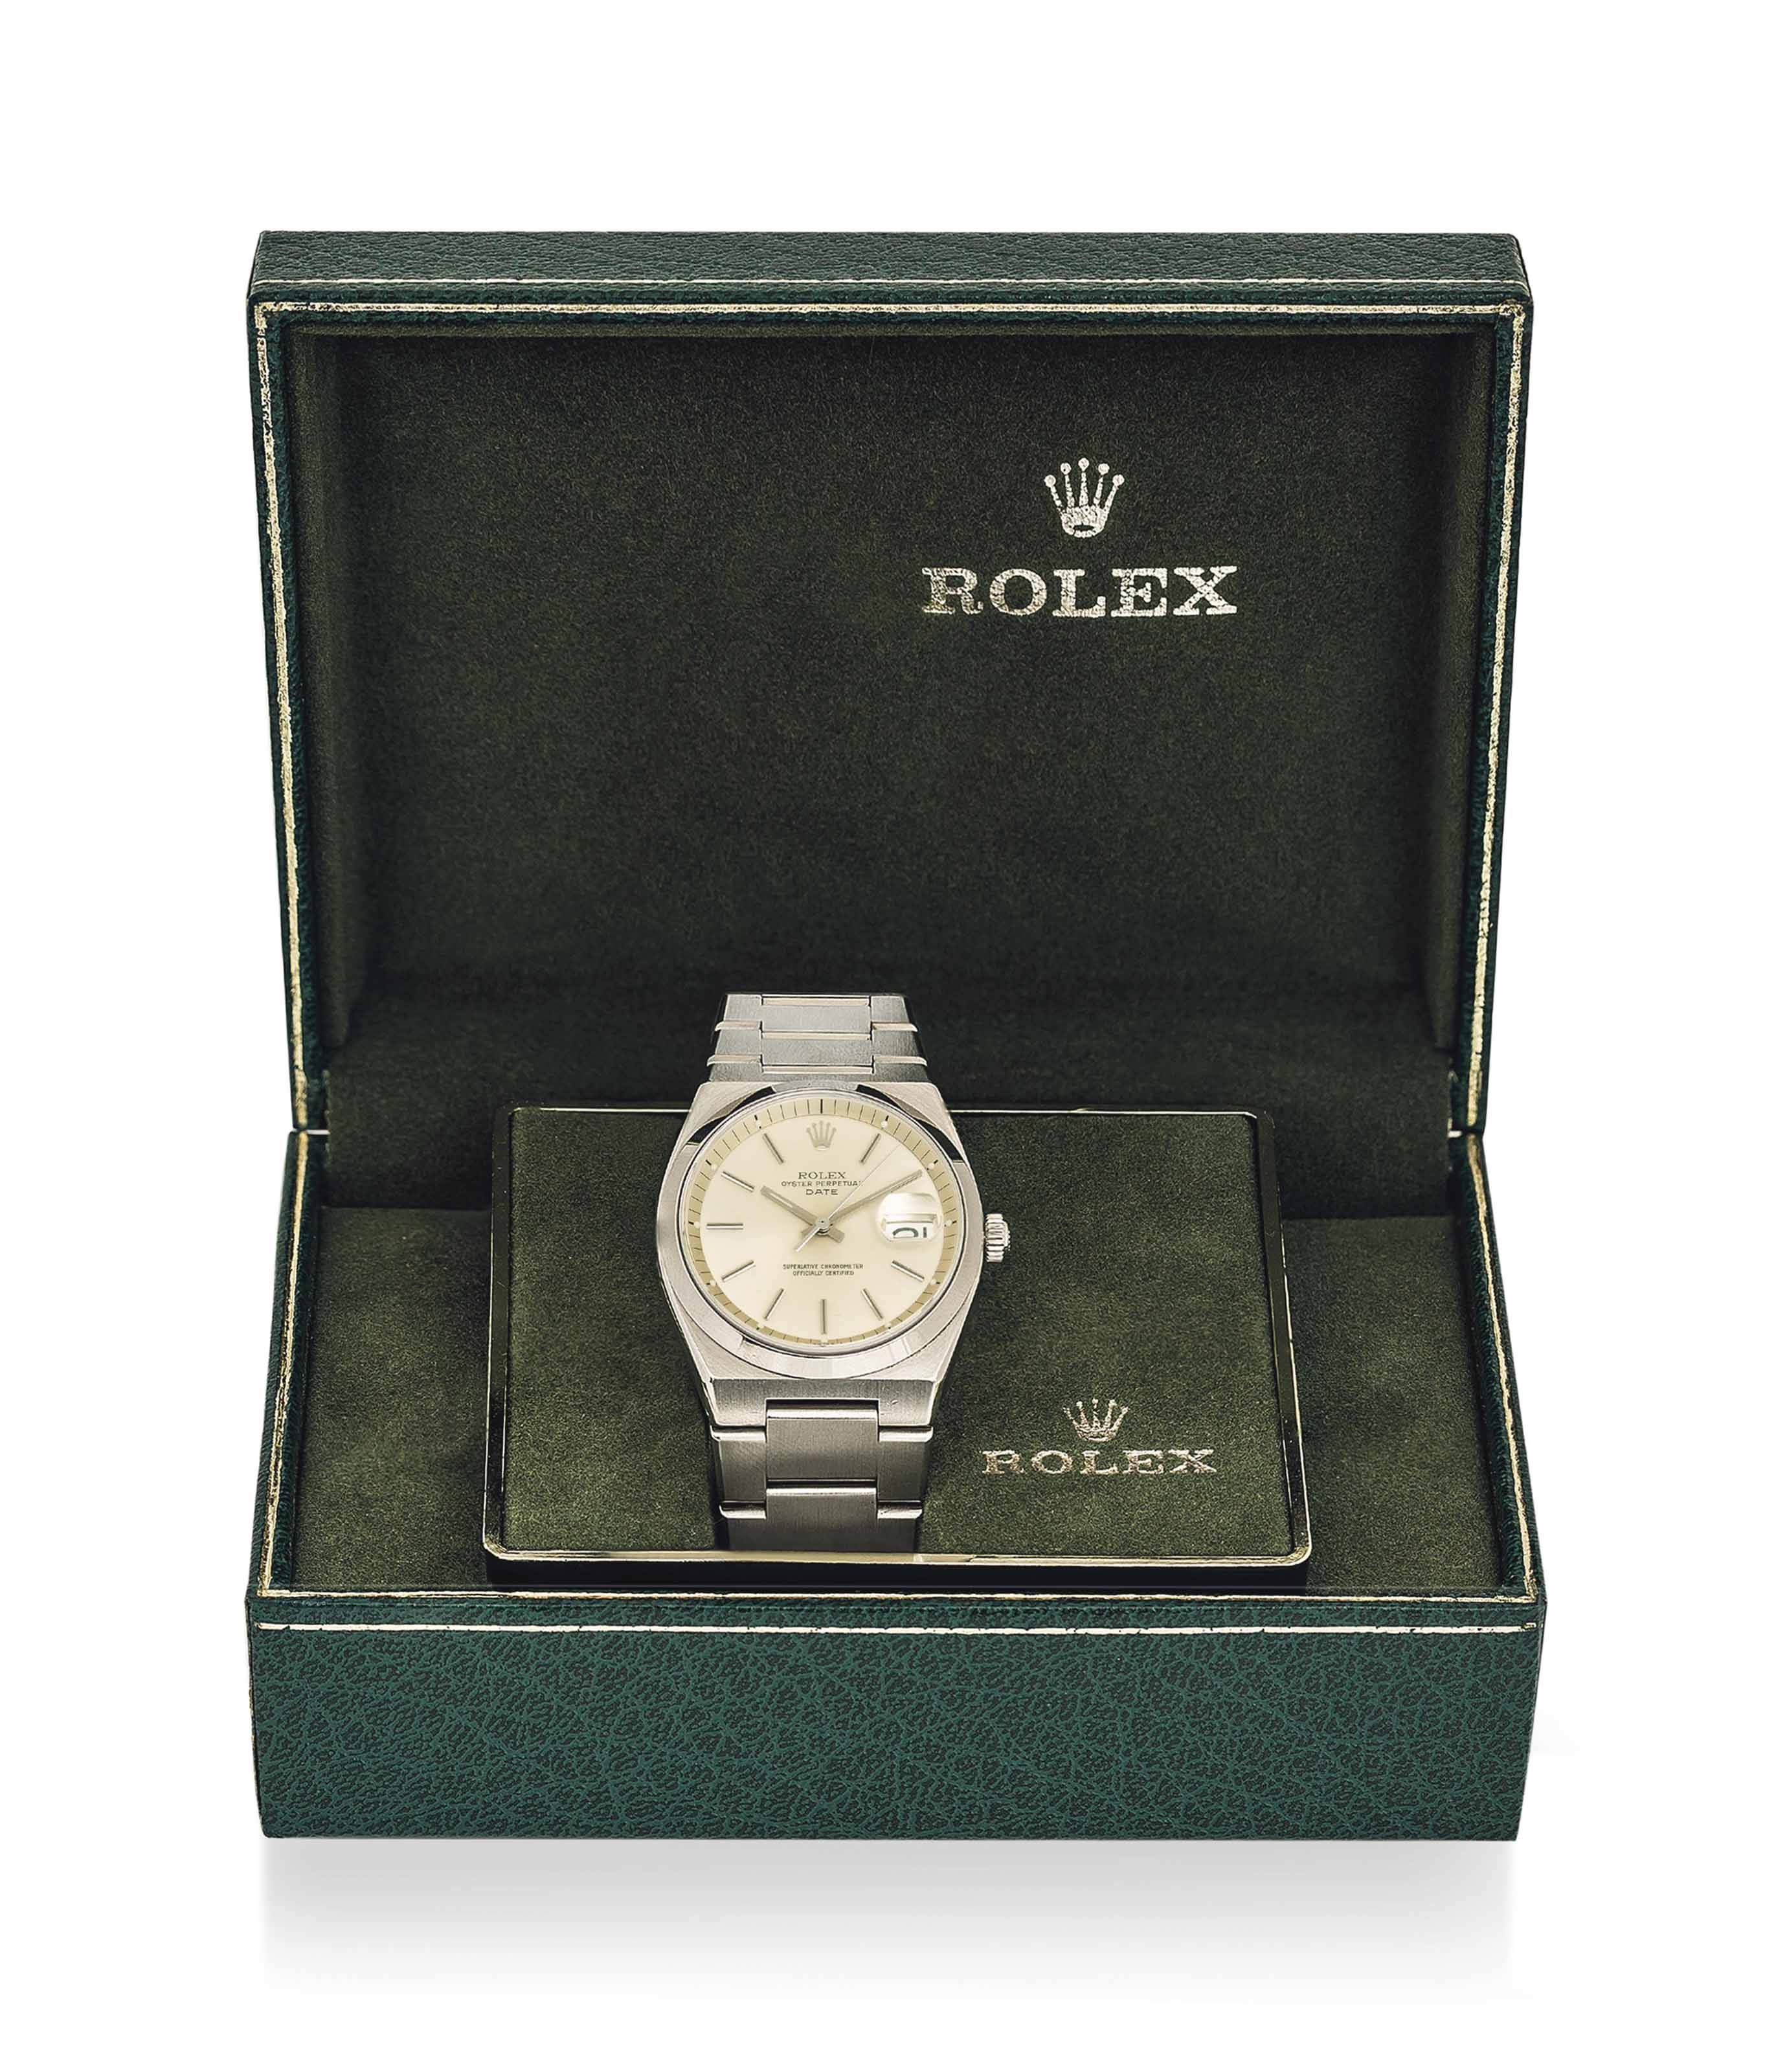 Rolex A Stainless Steel Automatic Wristwatch With Date Sweep